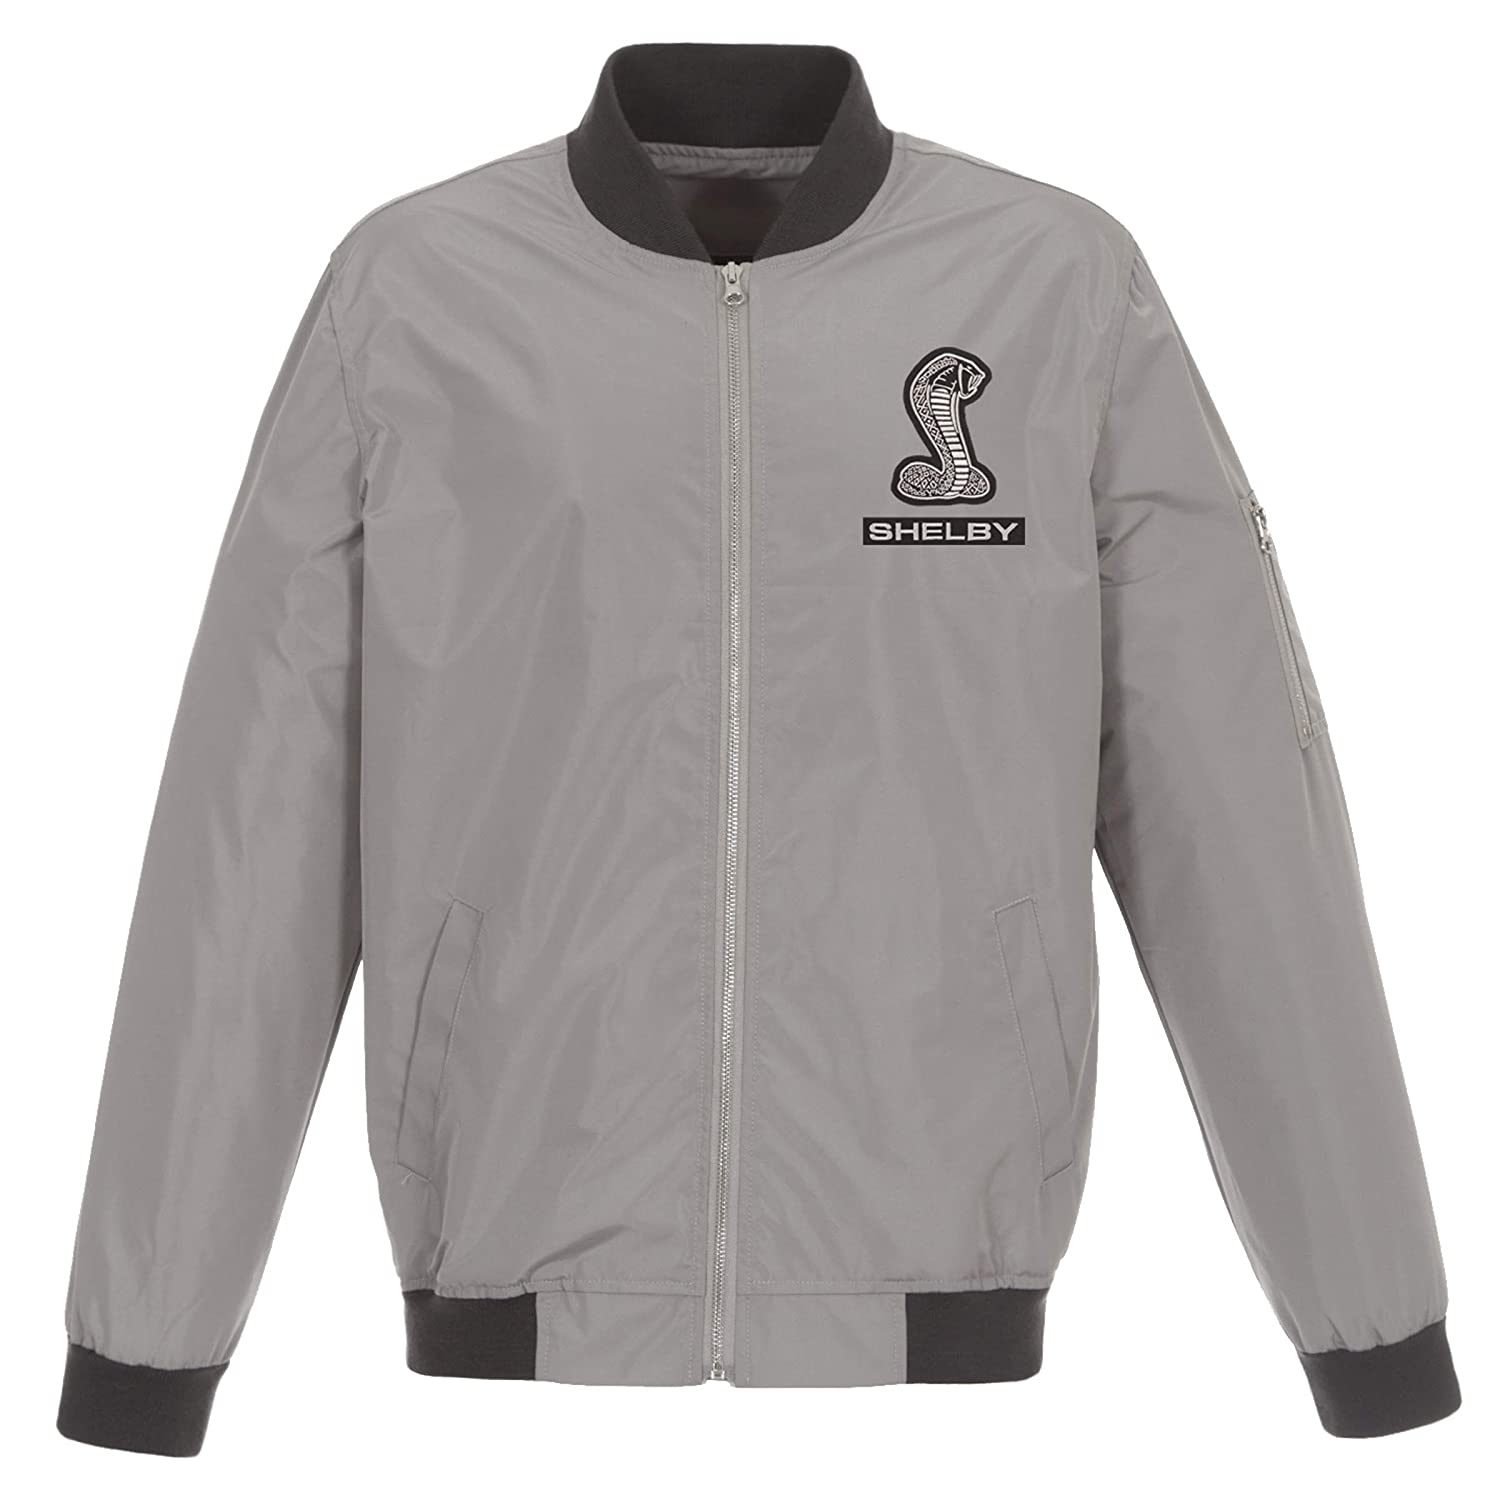 Mens Shelby Cobra Lightweight Zip-Up Nylon Jackets with Knit Trim